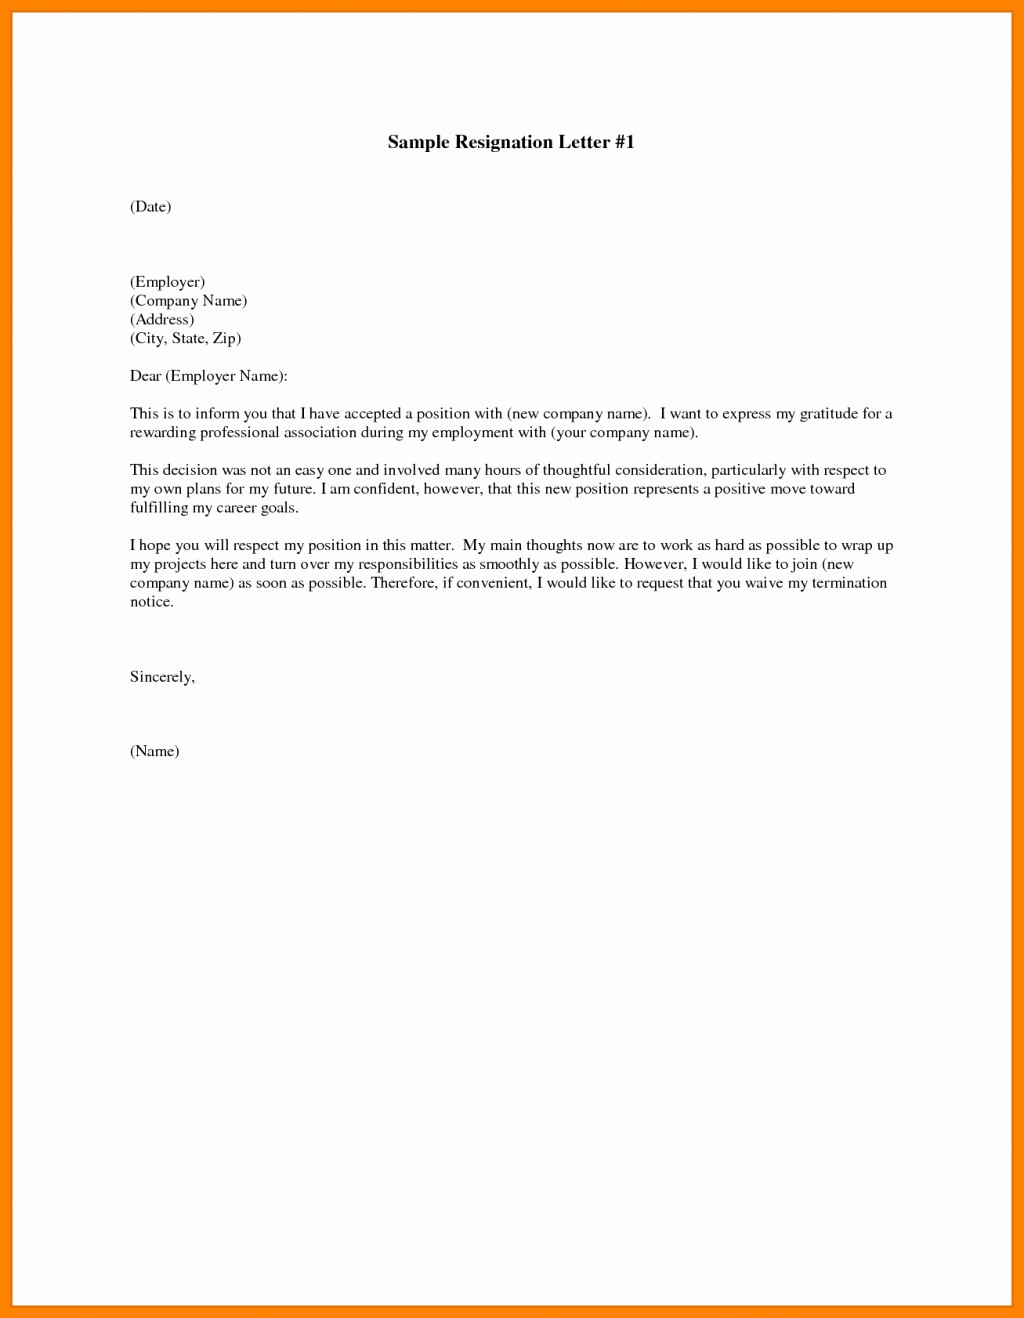 Formal Letter Template Microsoft Word Lovely Free Resignation Letter Template Microsoft Word Download